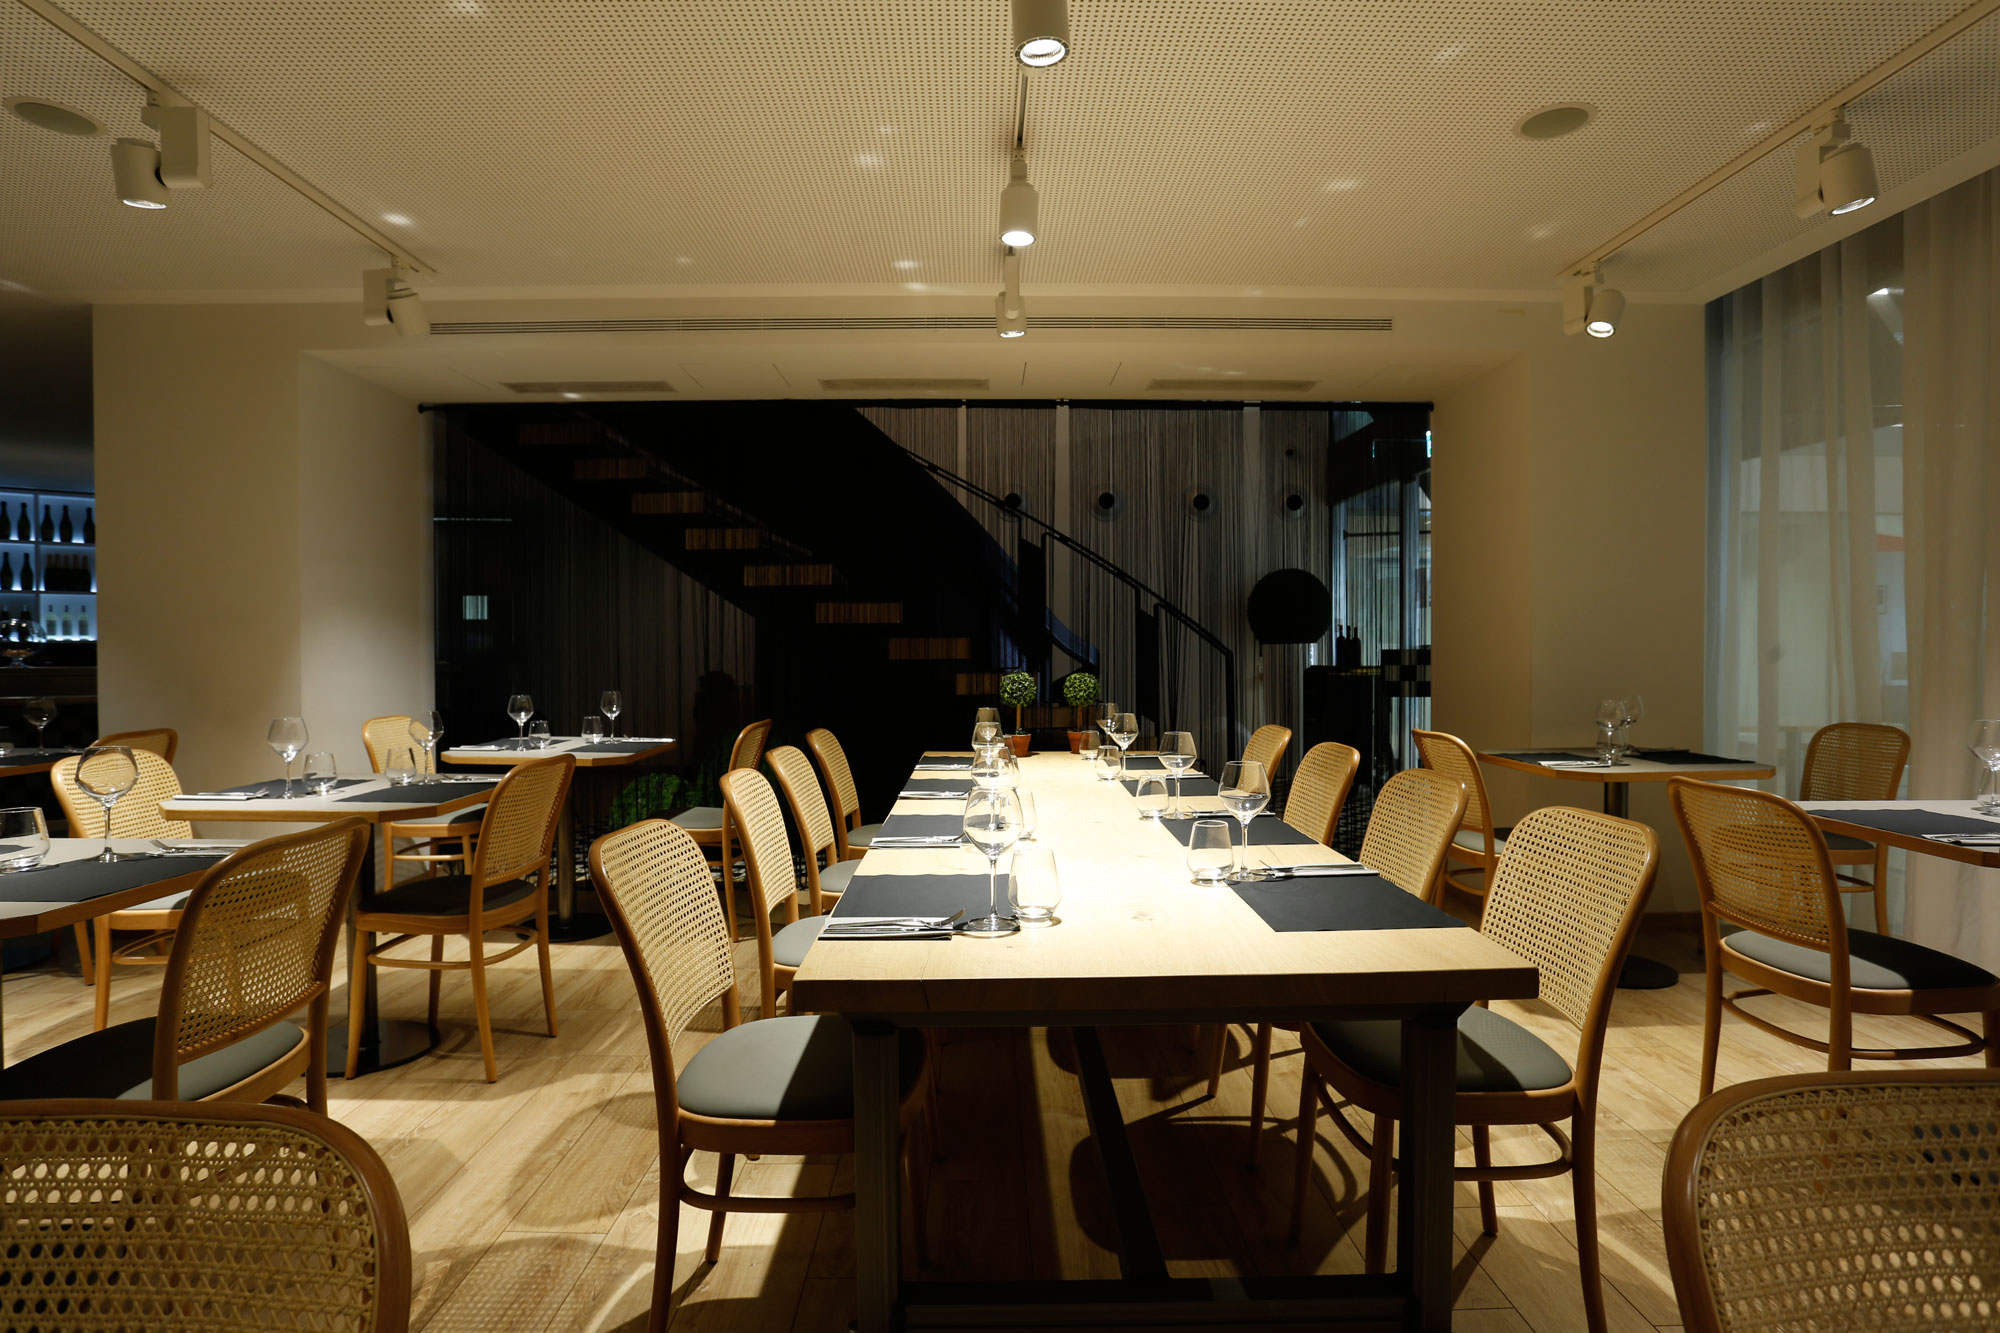 restaurant-IT-Barcelona-mobiliari-Silleria-Verges-11